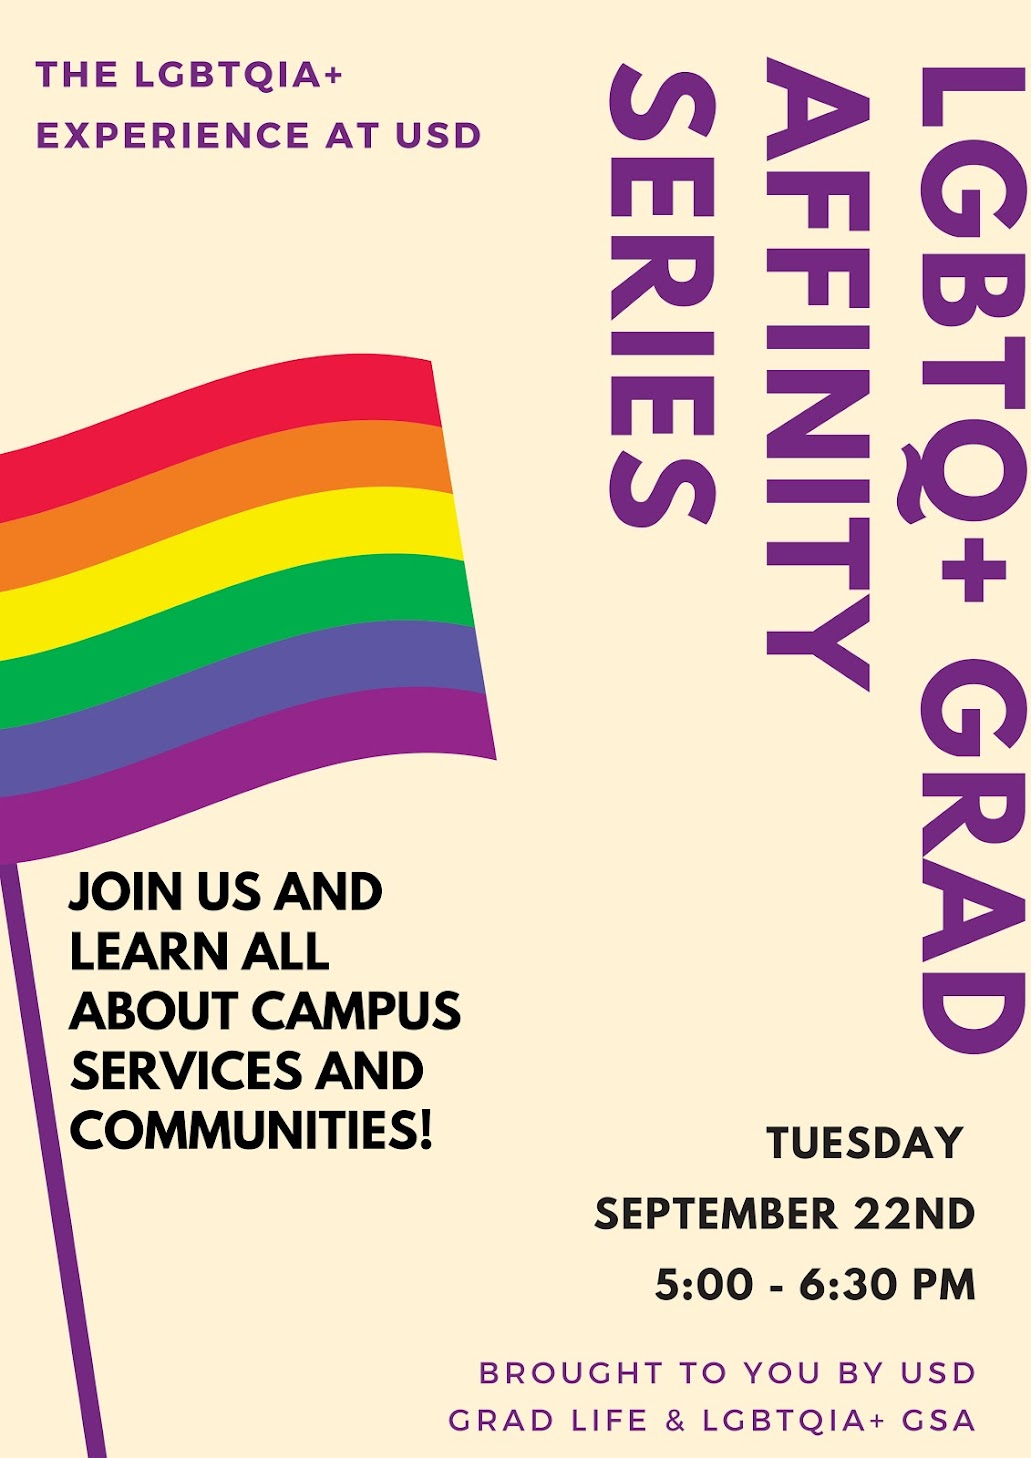 LGBTQIA+ Grad Affinity Group, Tuesday, September 22 at 5:00pm